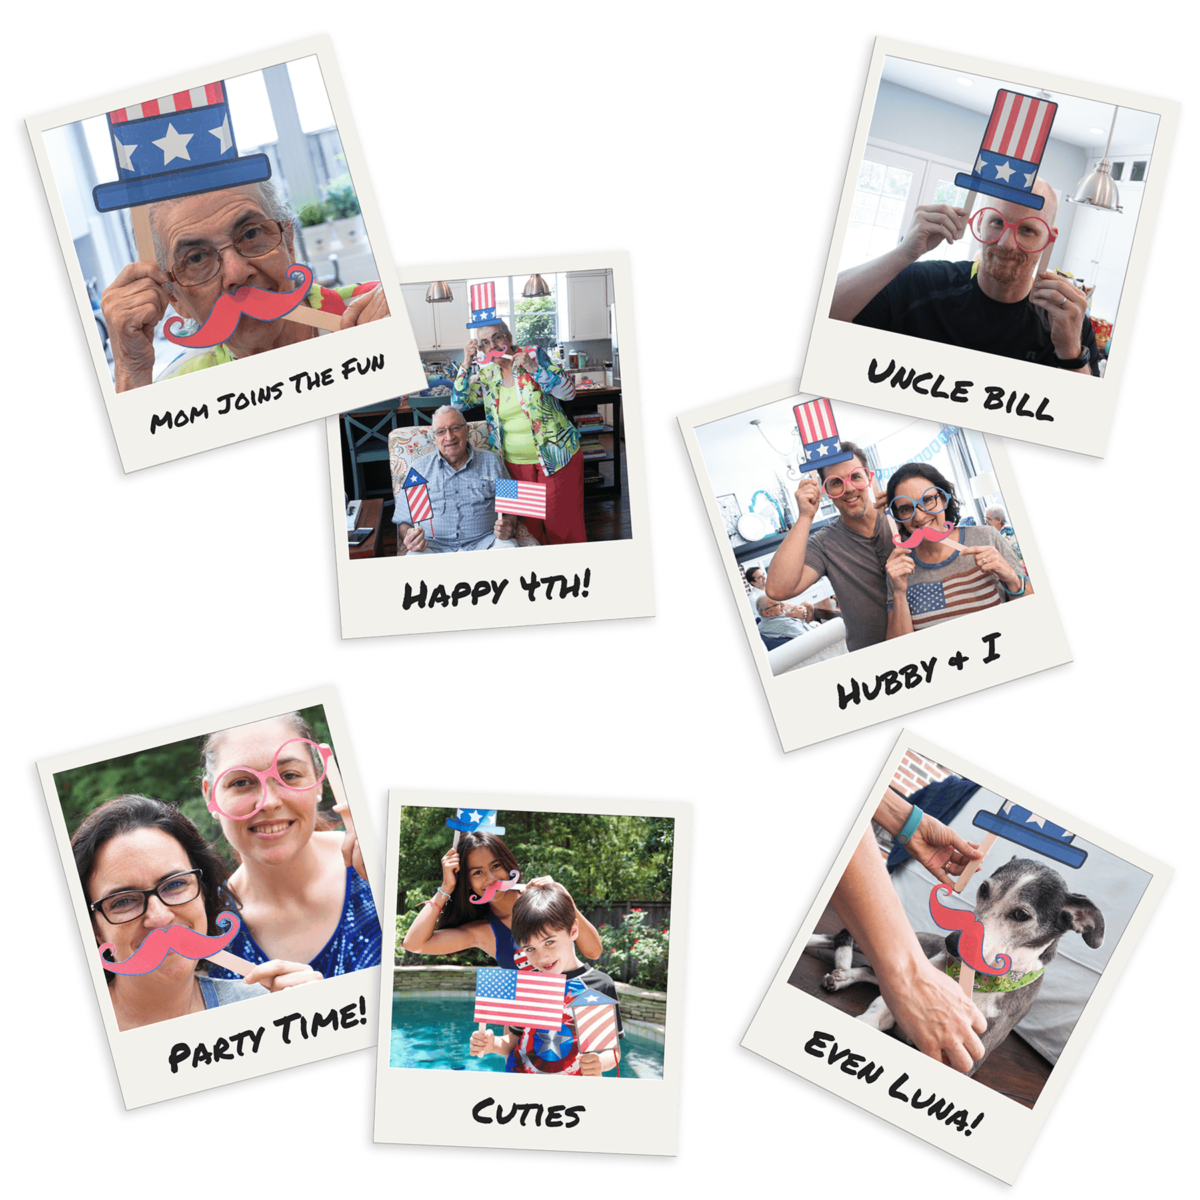 Have a blast at your 4th of July celebration with these free photo booth printables.